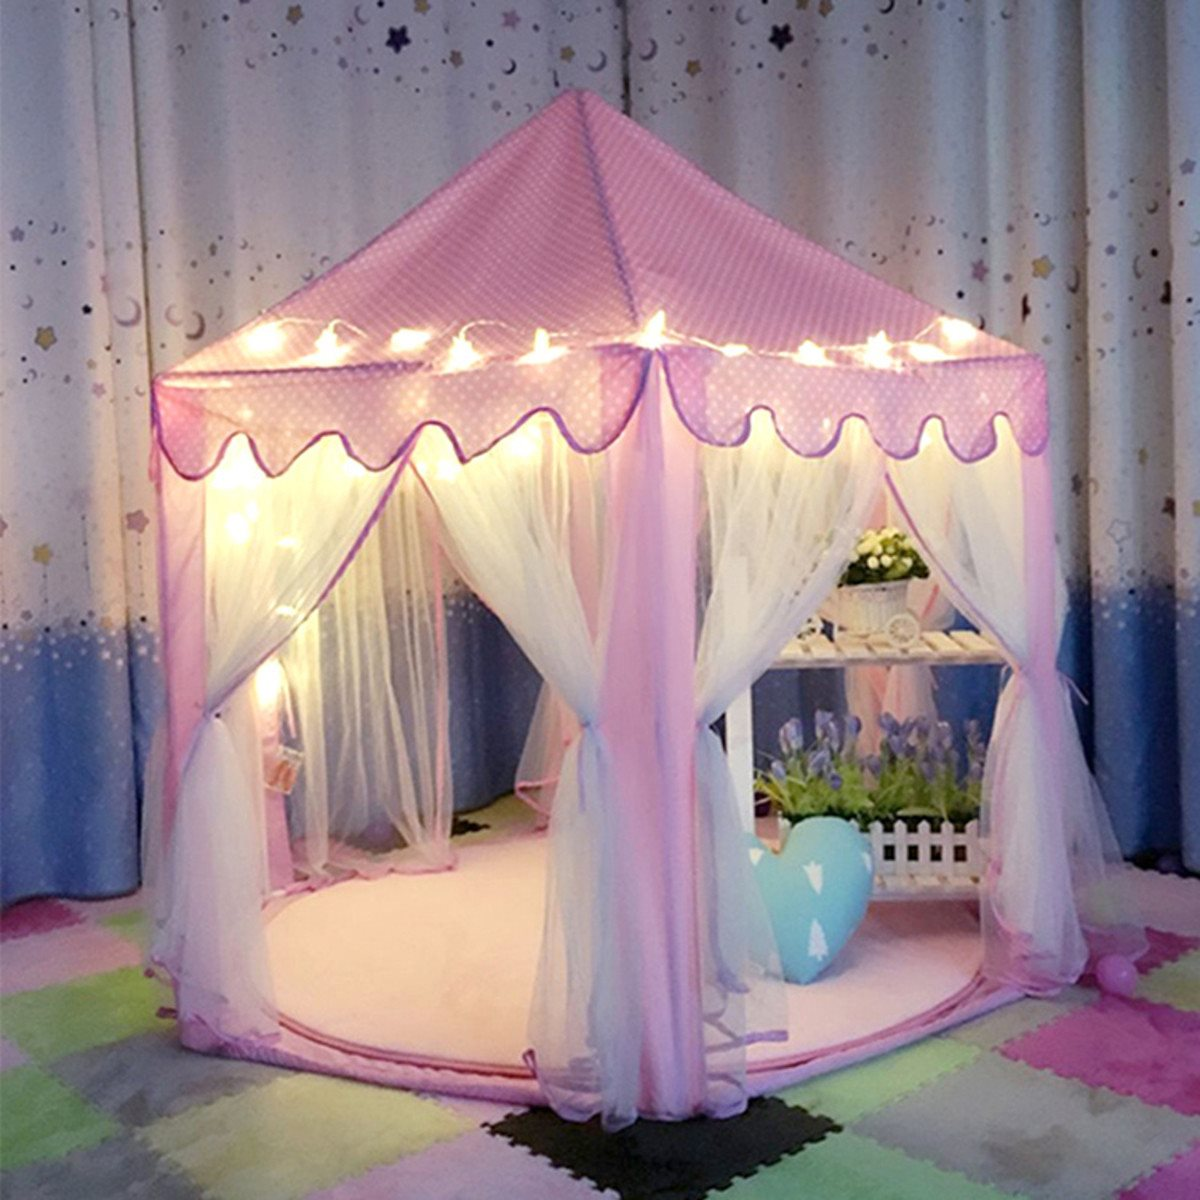 Lovely Girls Pink Portable Princess Castle Cute Playhouse Children Kids Play Tent Outdoor Toys Beach Tent For Children Kids & Lovely Girls Pink Portable Princess Castle Cute Playhouse Children ...